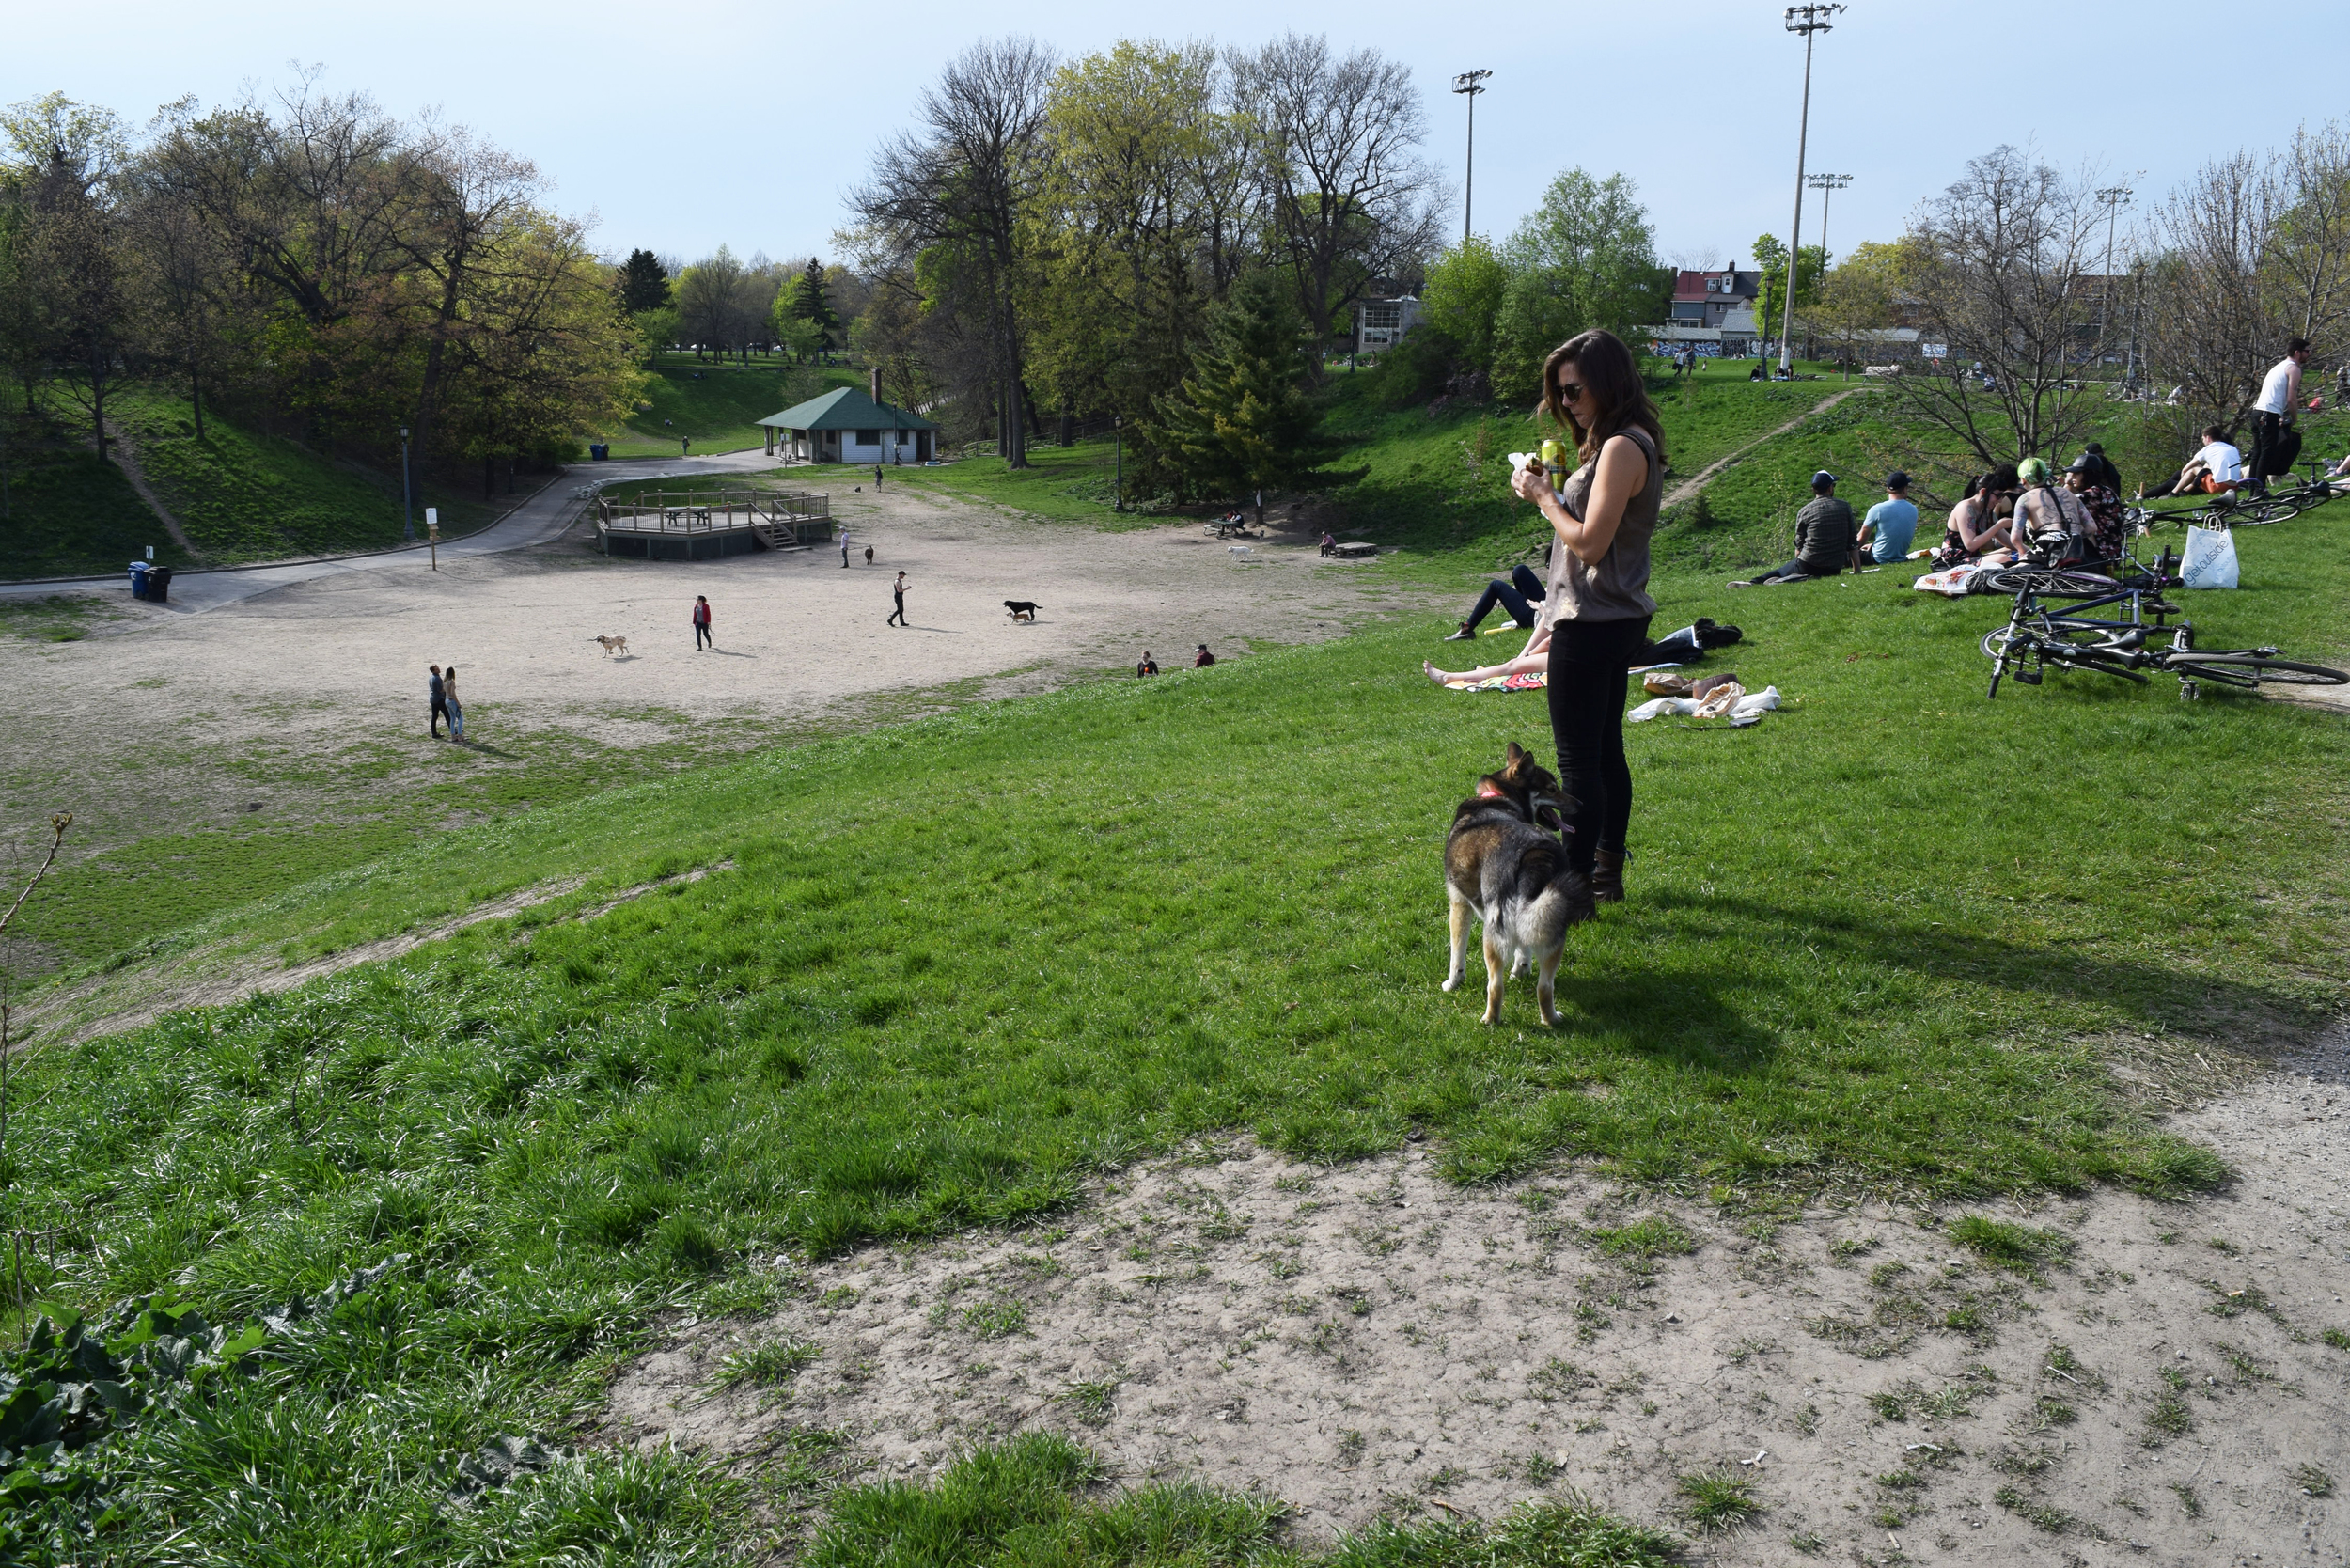 The Dog Bowl in Trinity Bellwoods Park (photograph by John Severino)